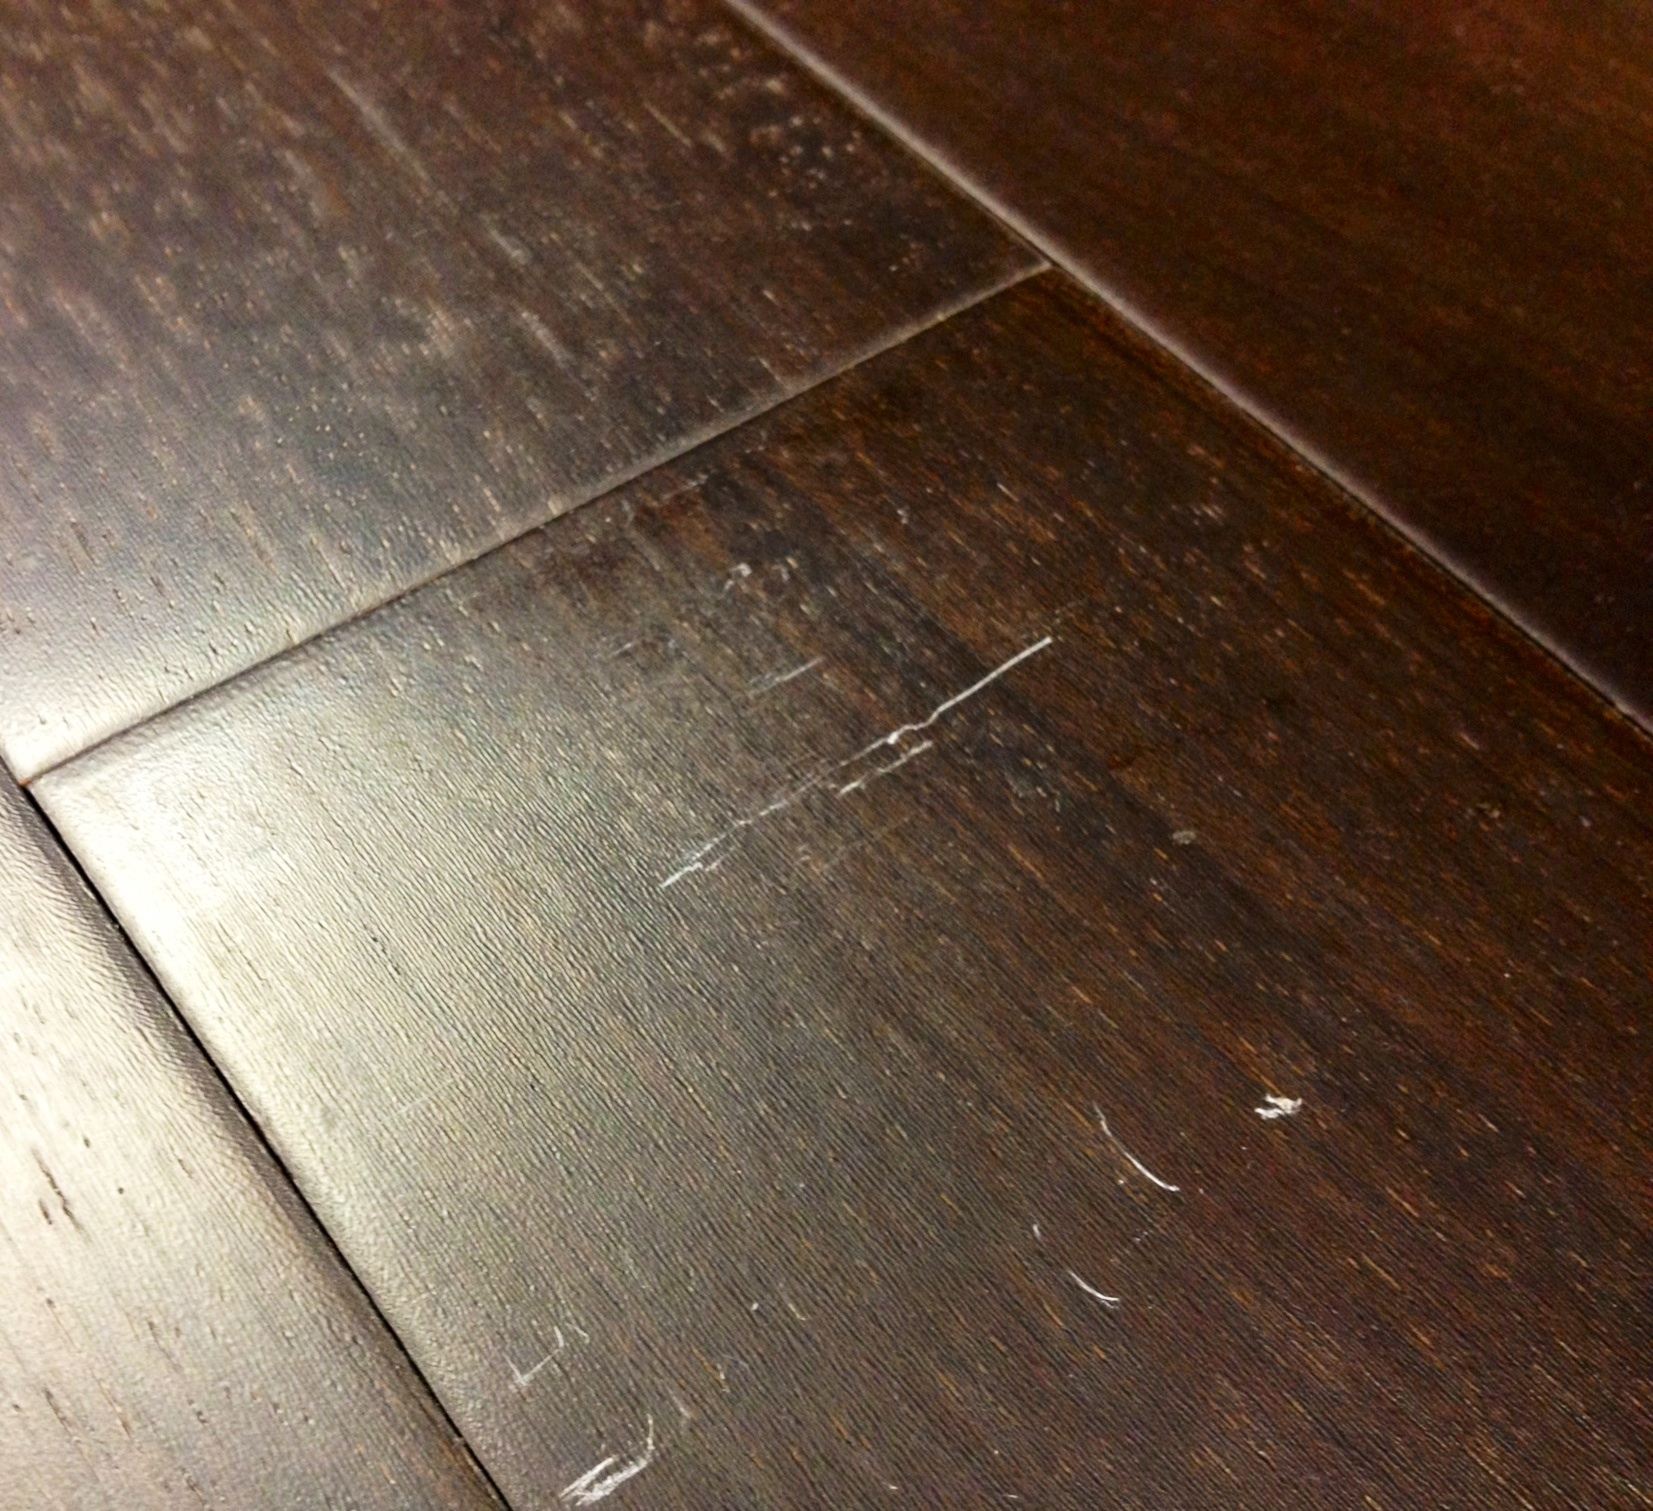 Scratched Wood Floor Finishselecting the correct finish oil versus urethane woodwright